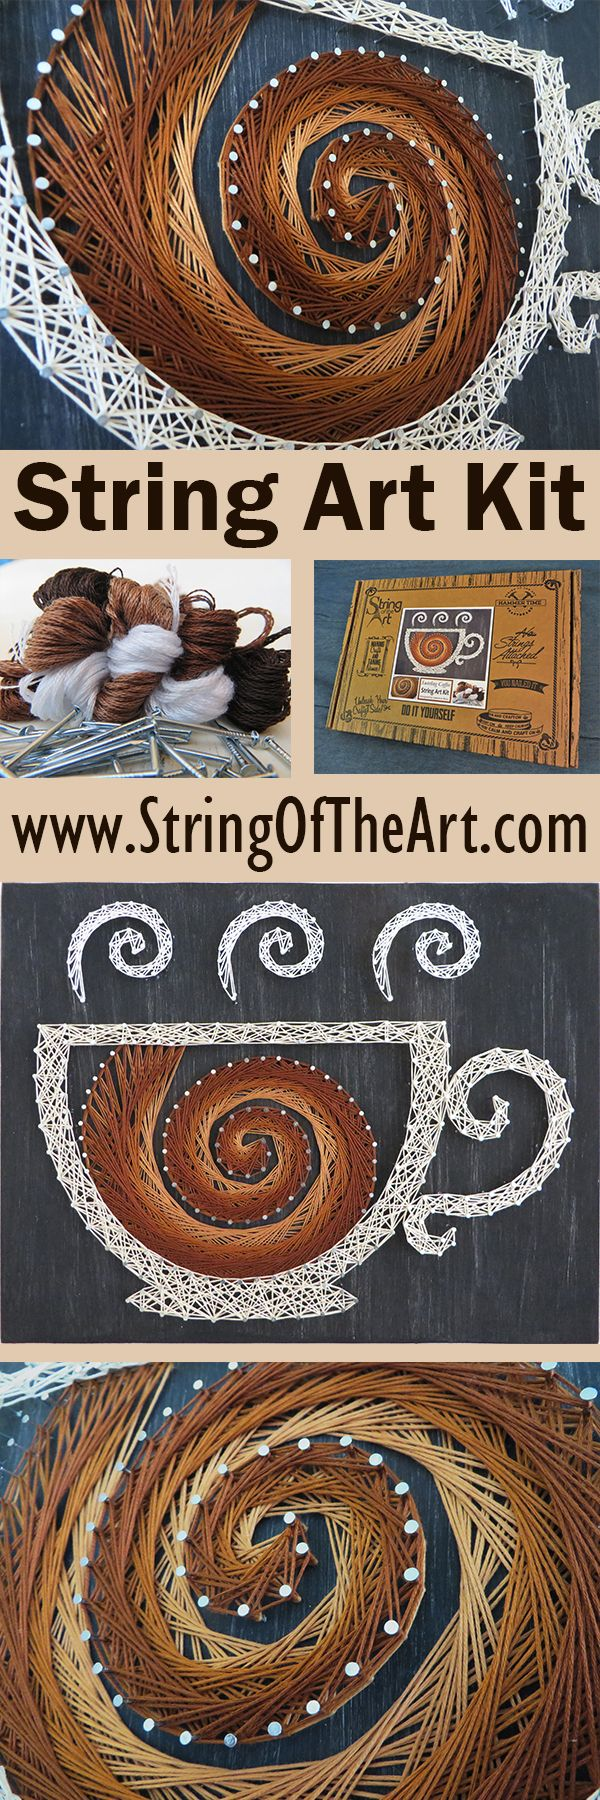 DIY String Art Kit - Visit www.StringoftheArt.com to learn more about creating this easy and fun coffee string art project!  Kit comes with a HAND sanded and HAND painted distressed black pine wood board, highest quality embroidery floss, metallic wire nails, easy to follow instructions, and pattern template.  DIY Home Decor, Crafts Kit, DIY and Crafts, Coffee Decor